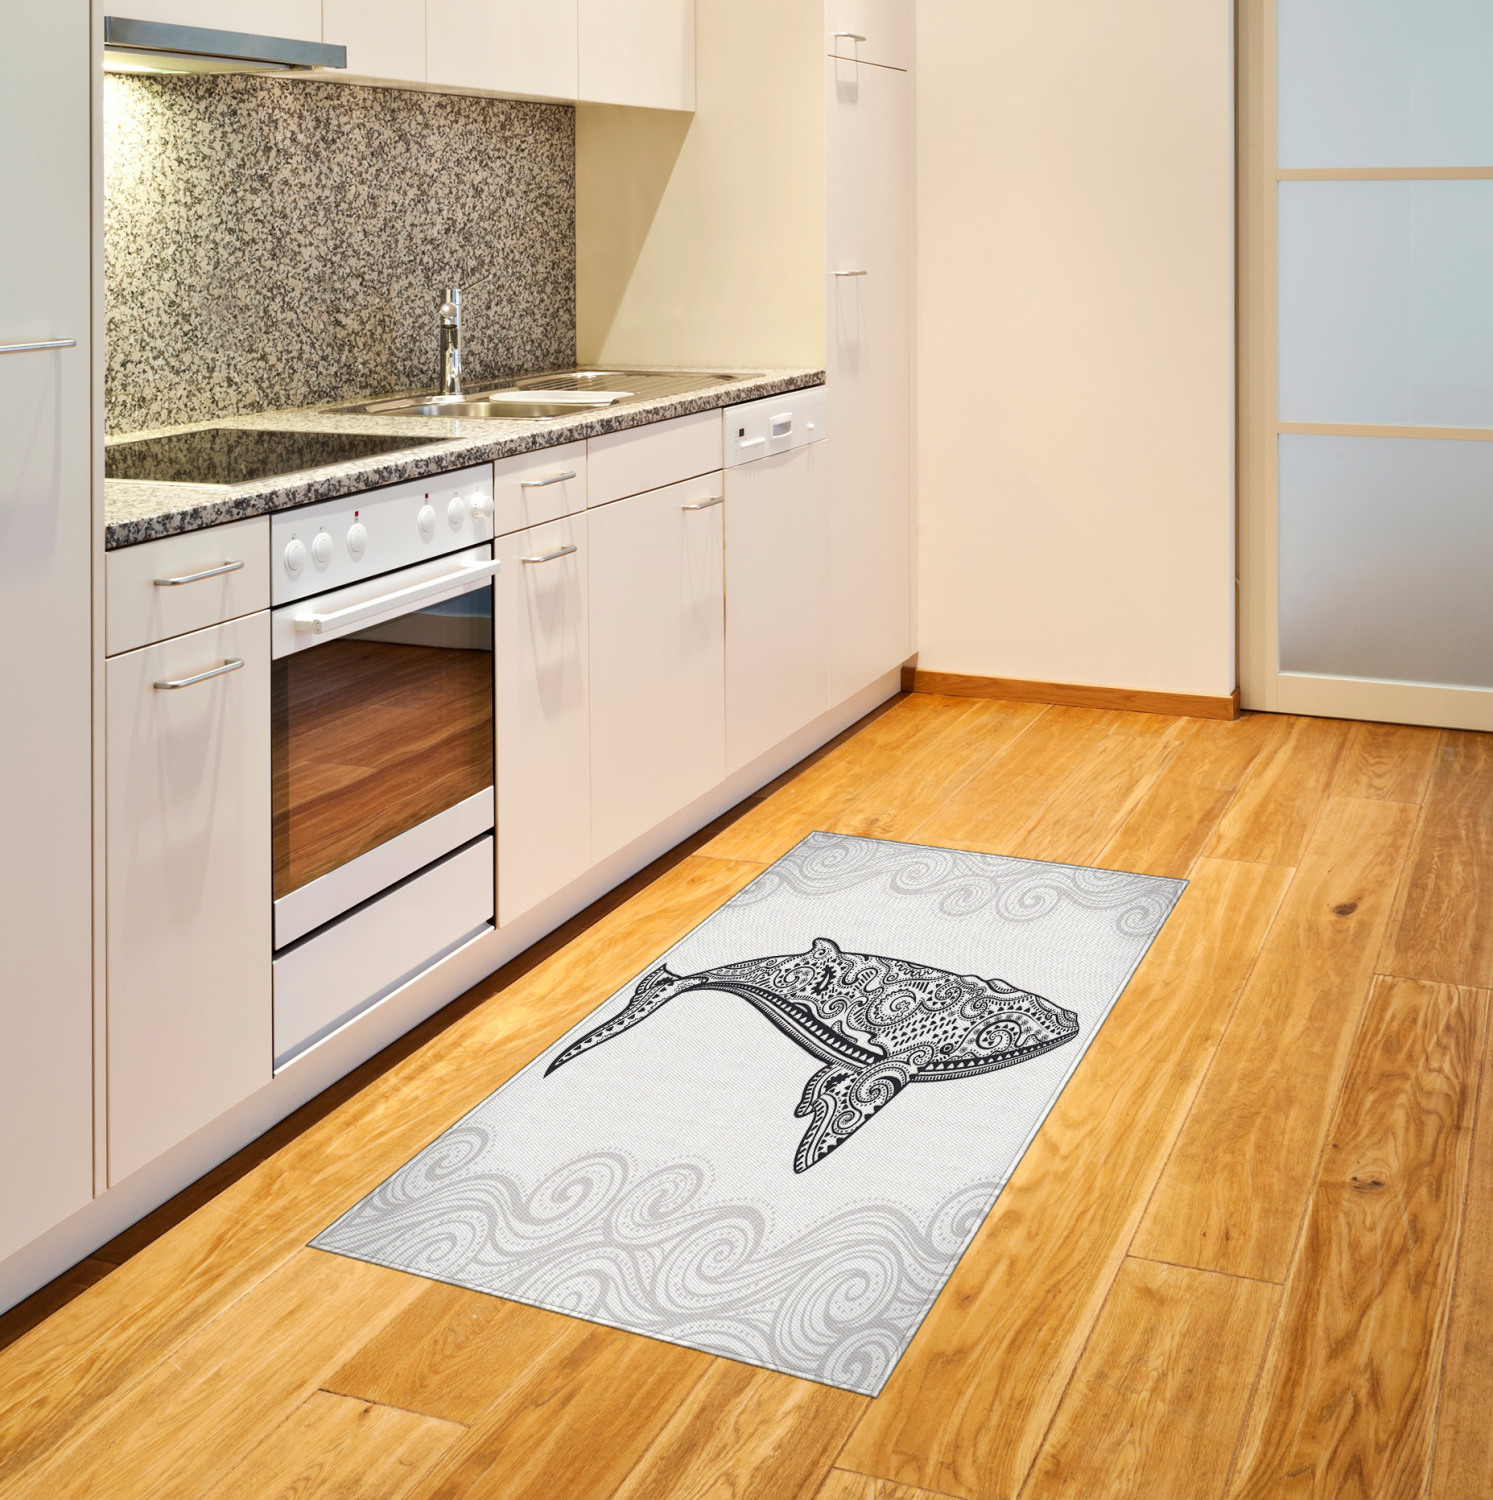 Nautical-Whale-Area-Rug-Decorative-Flat-Woven-Accent-Rug-Home-Decor-2-Sizes